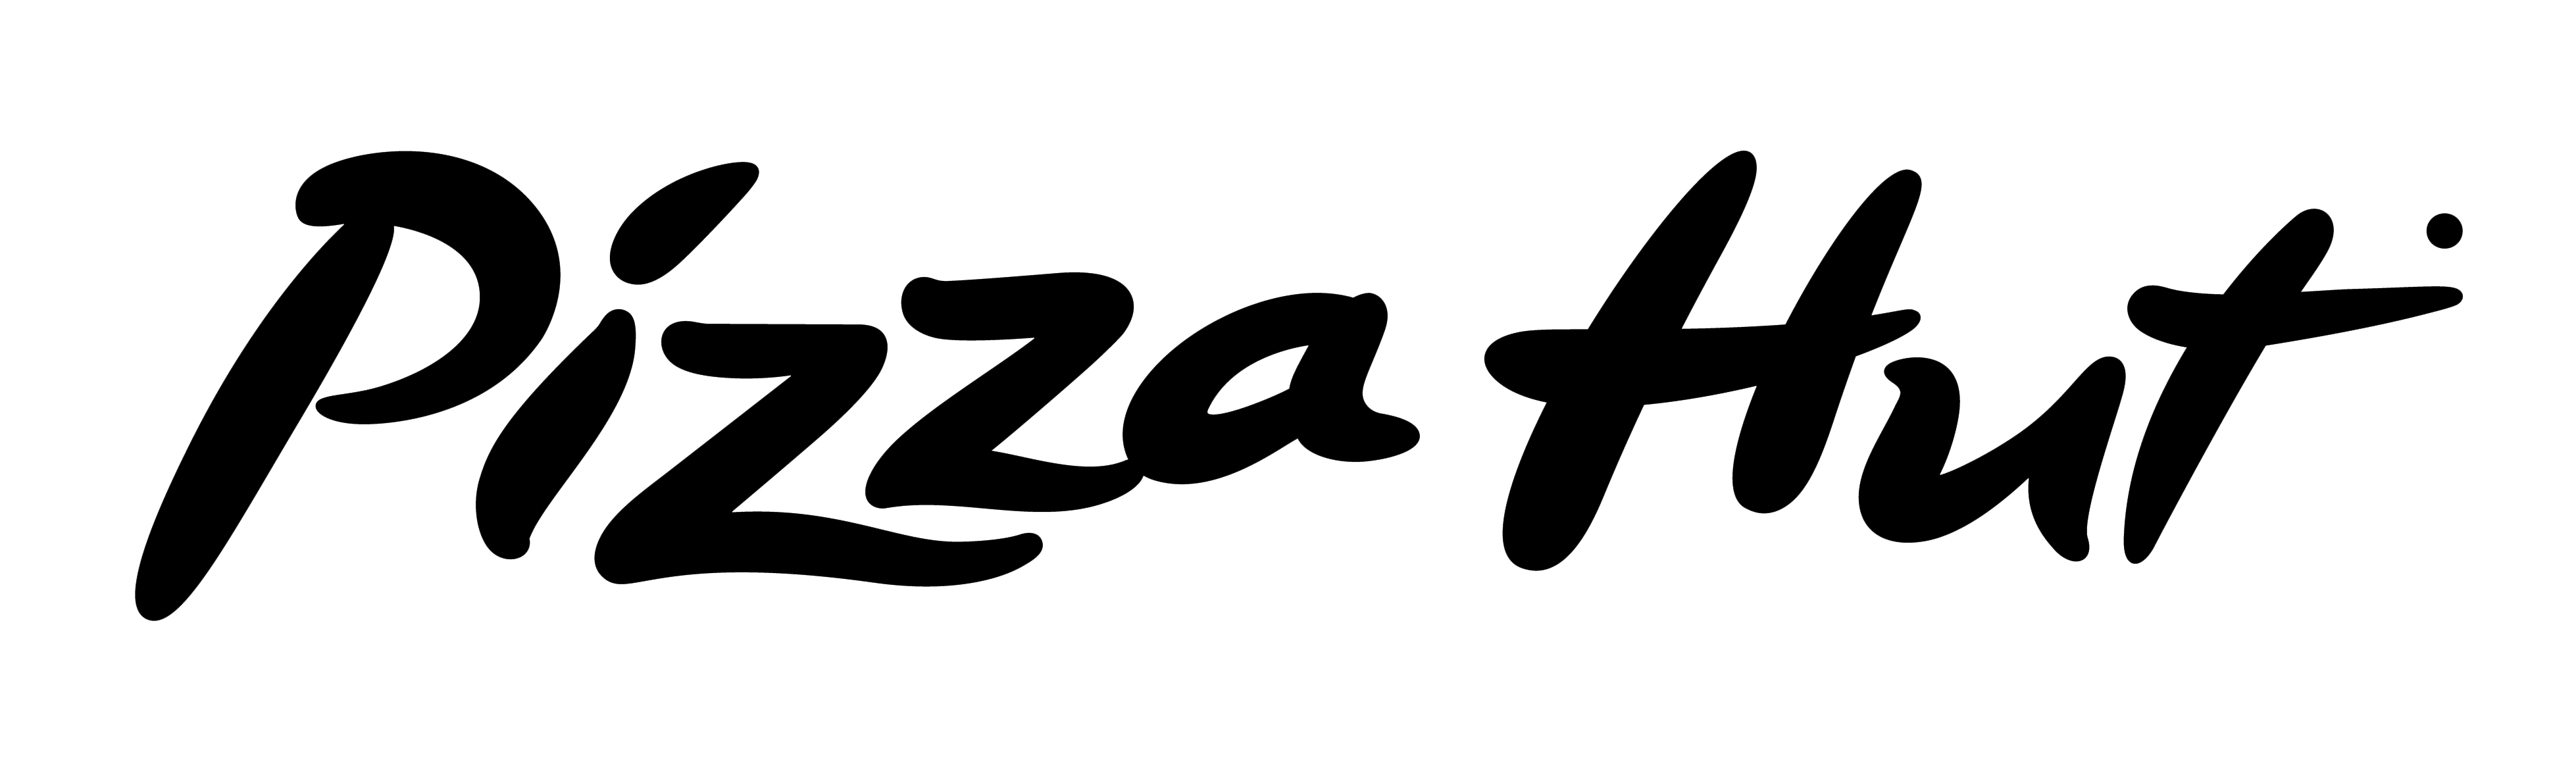 Pizza Hut Logo And Symbol, Meaning, History, Png - Pizza Hut, Transparent background PNG HD thumbnail